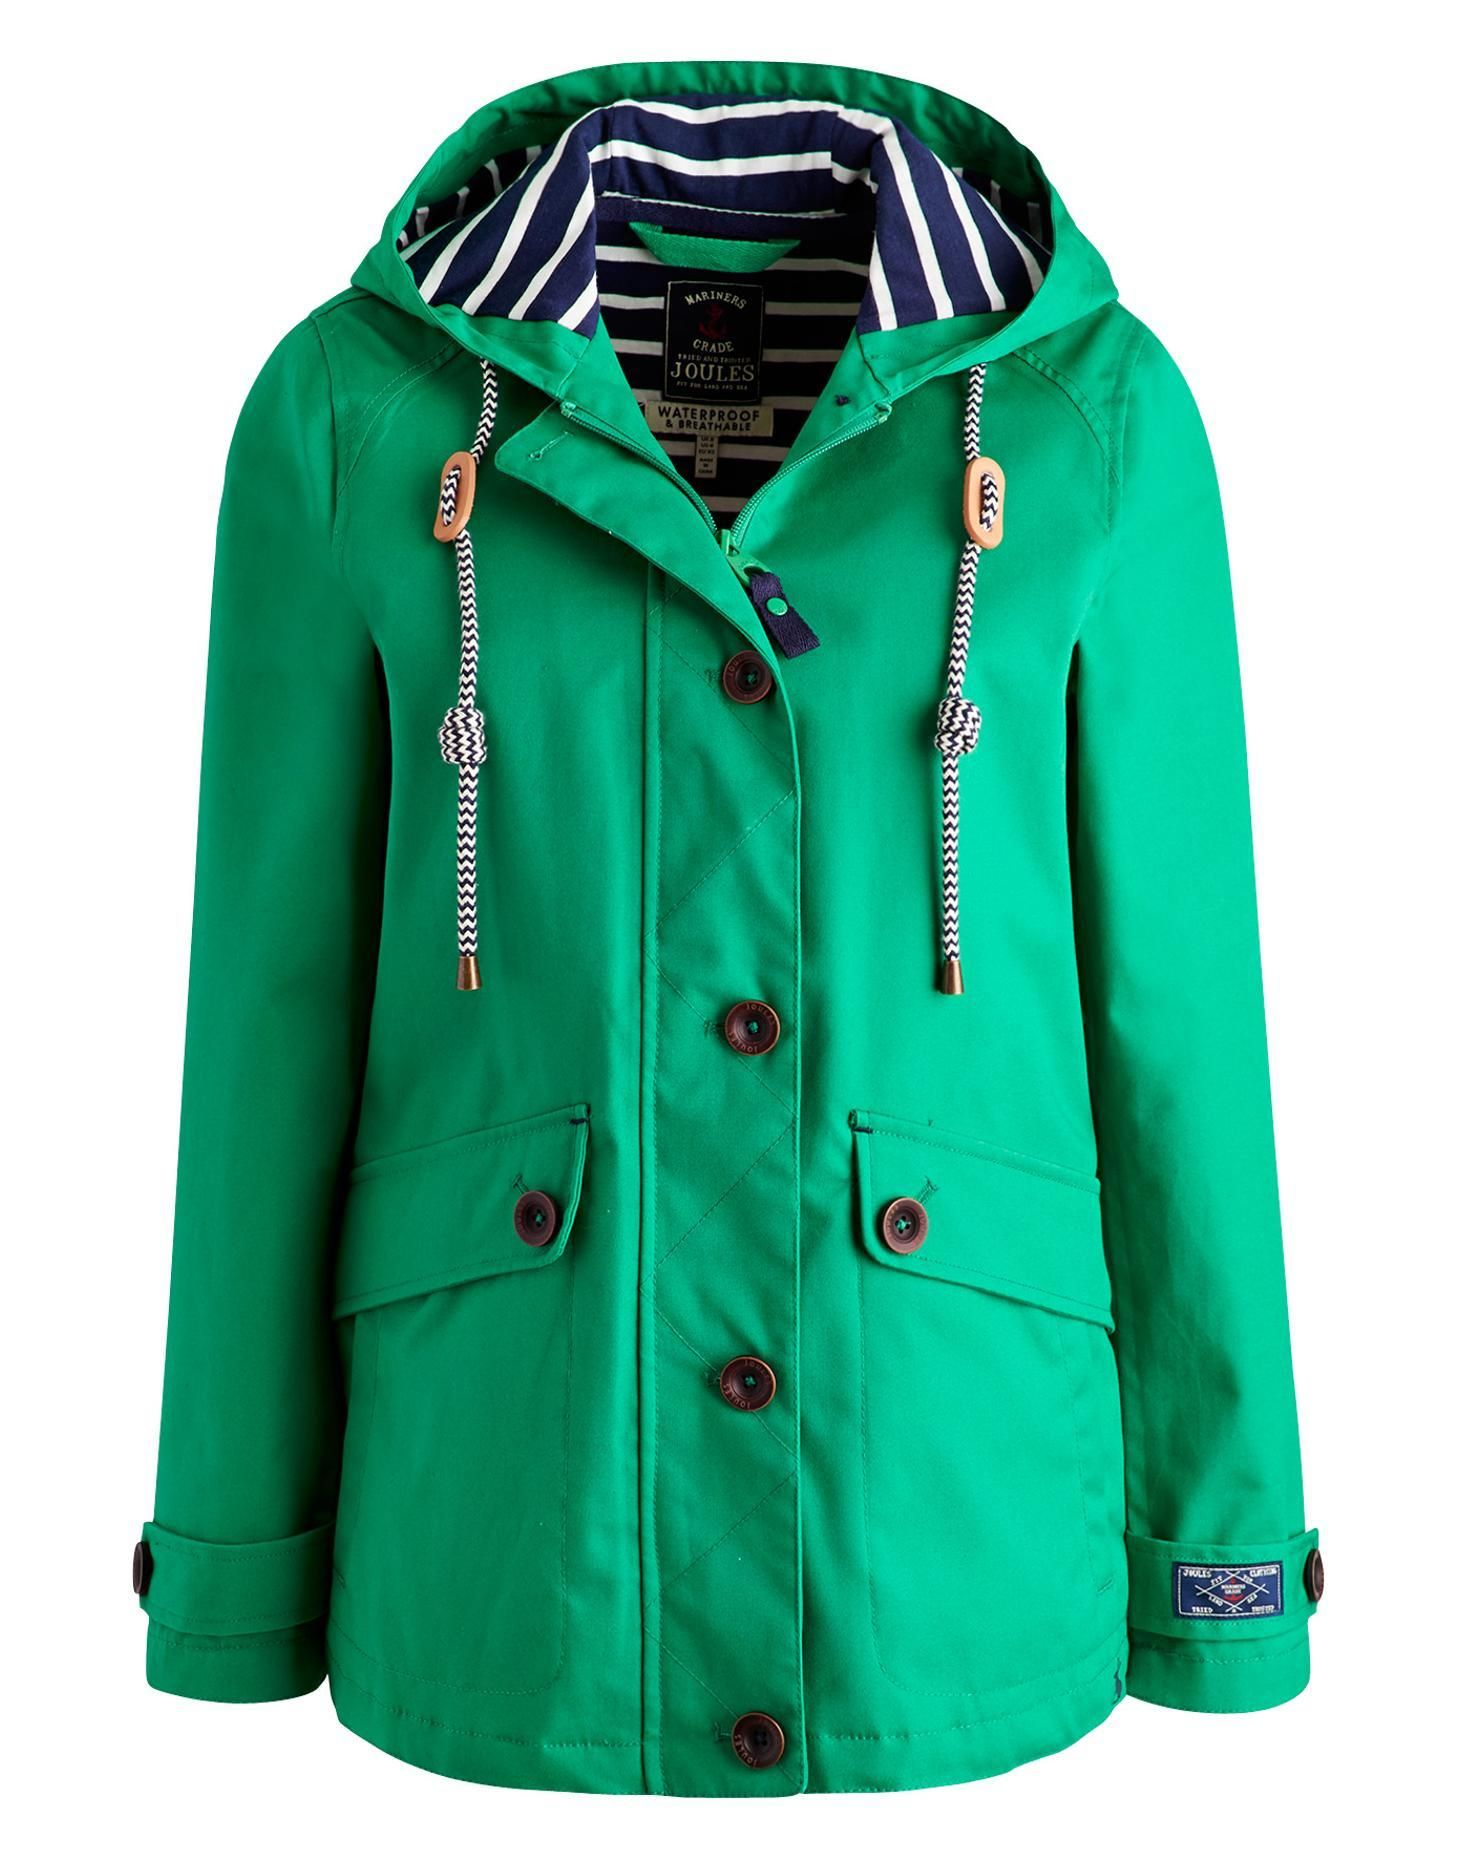 Joules Womens Waterproof Hooded Jacket, Bright Green. Part of our ...